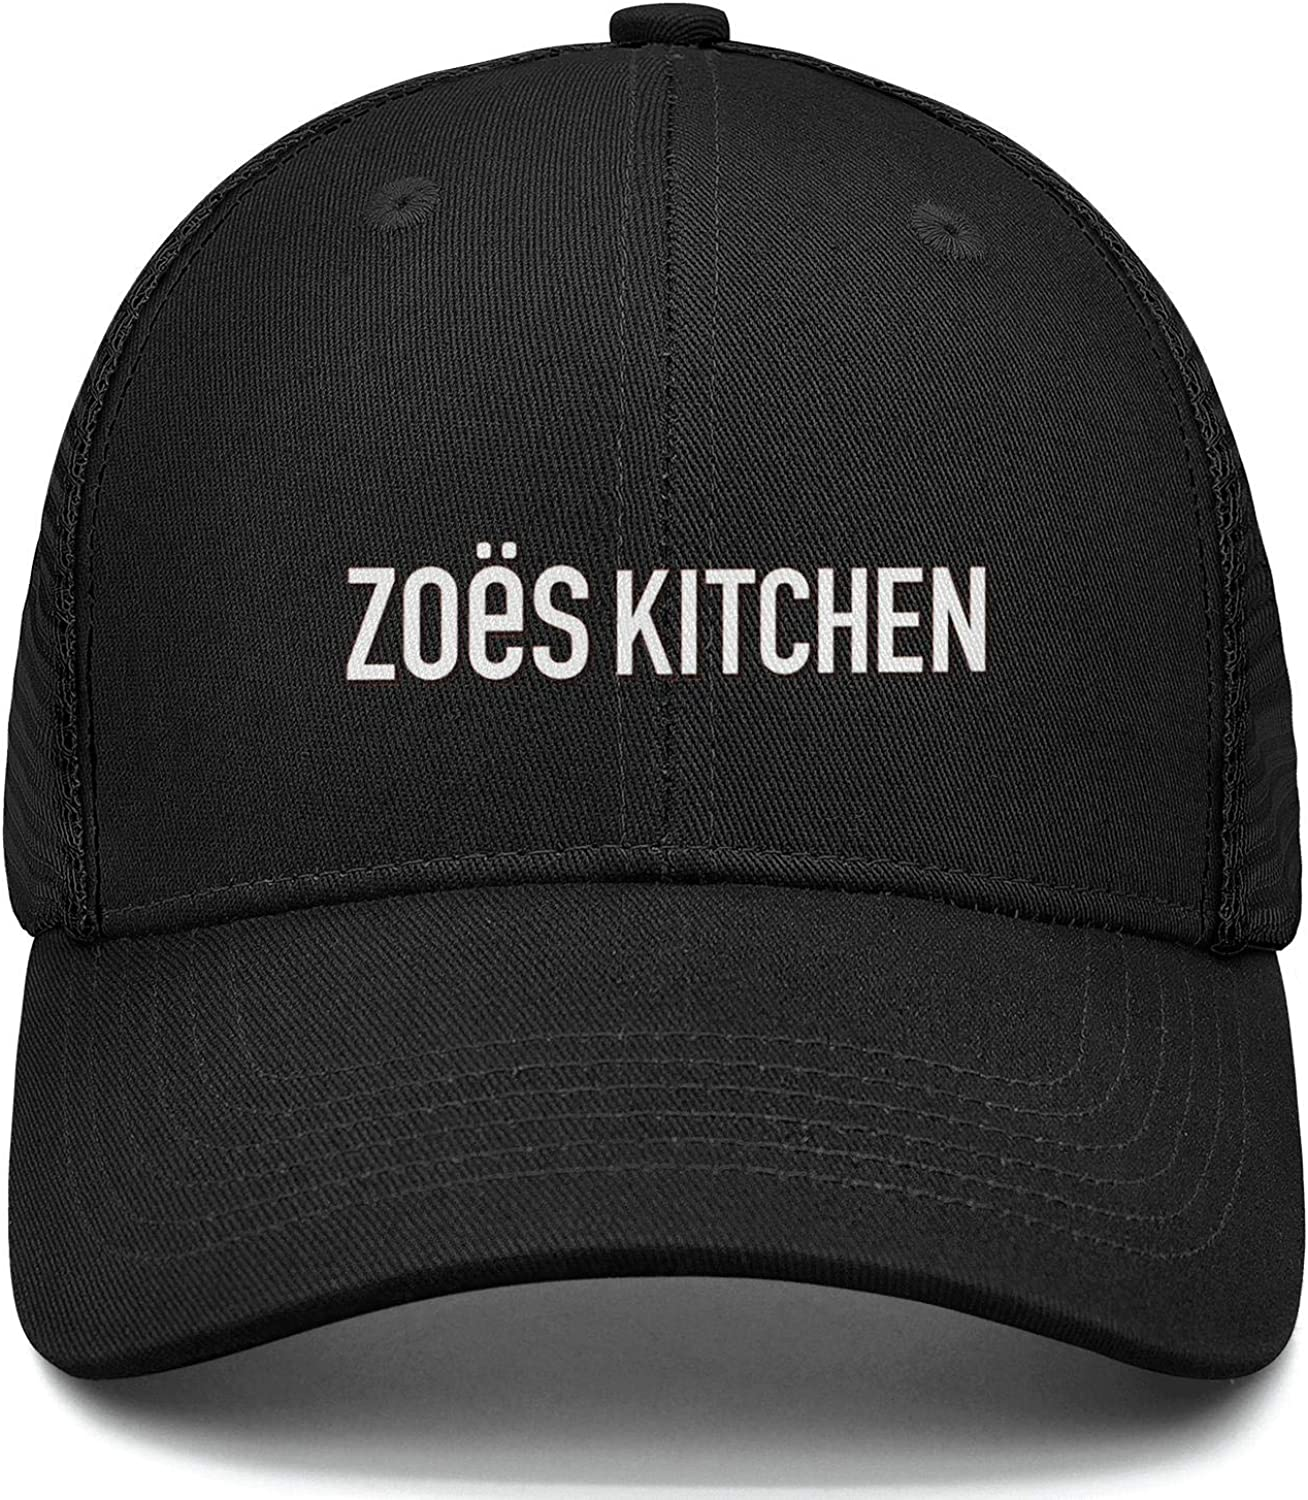 WintyHC Zoes Kitchen-Logo Cowboy Hat Bucket Hat One Size Baseball Cap